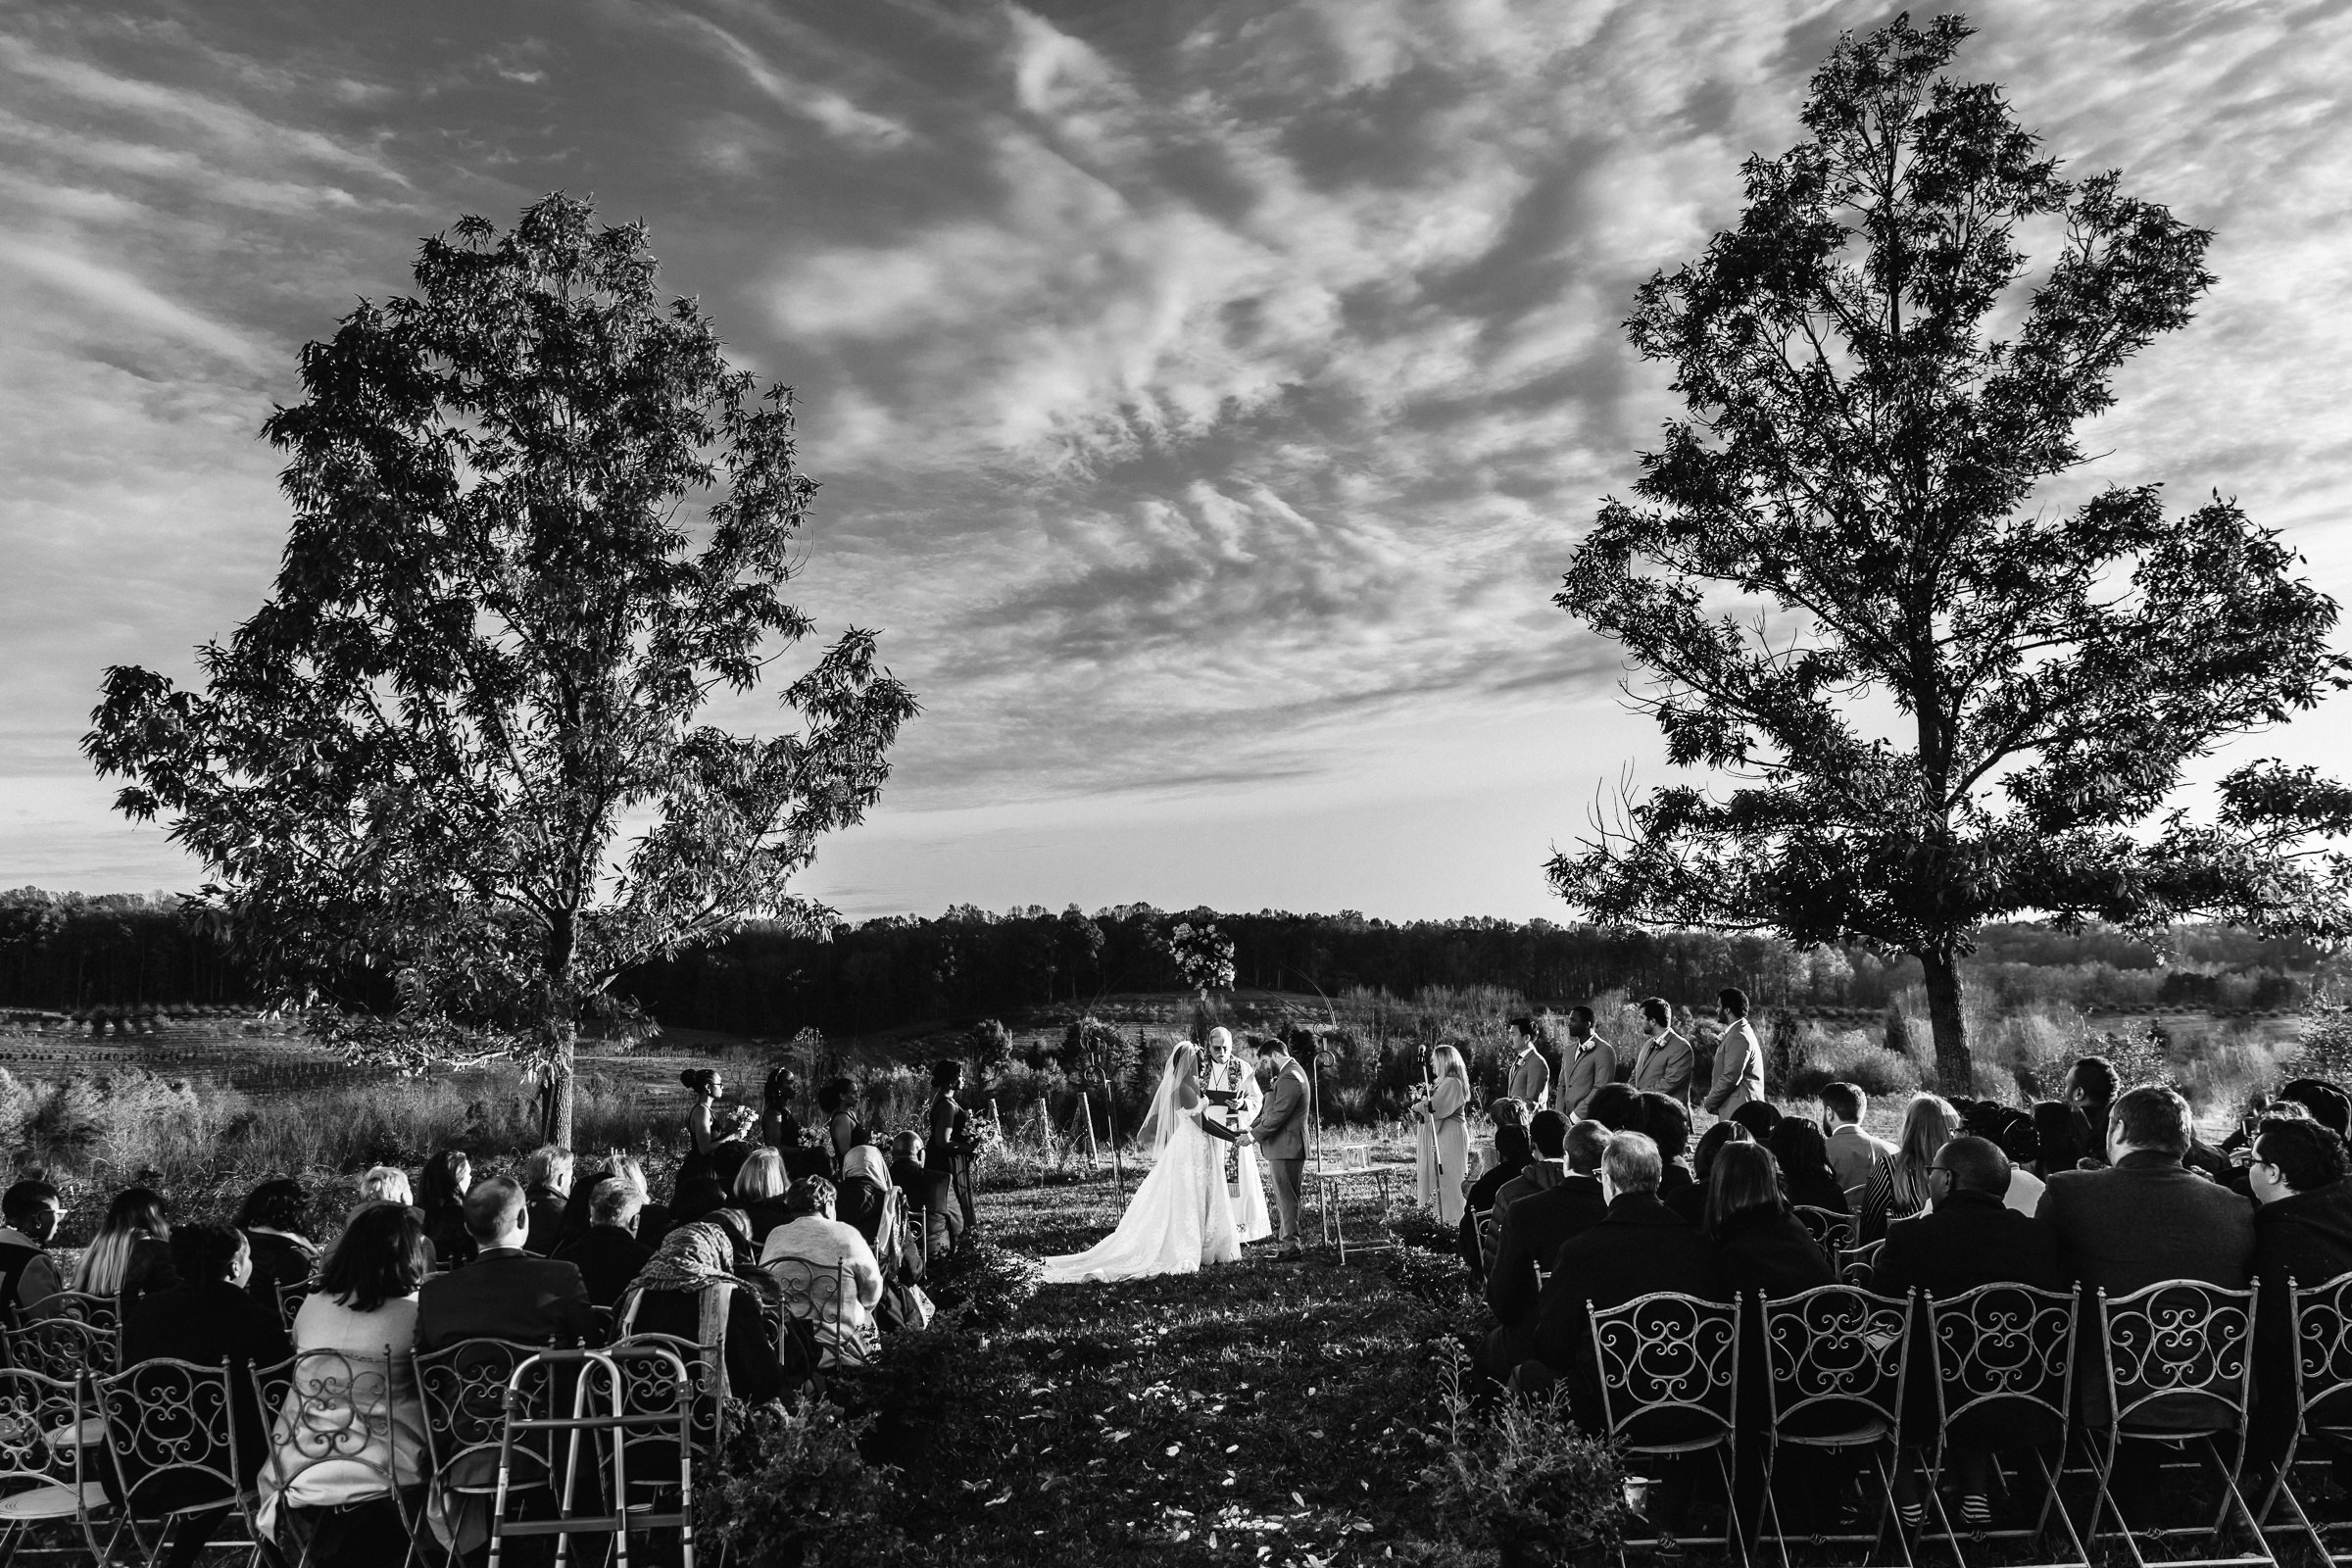 Outdoor ceremony under cloudy skies - photo by Xiaoqi Li Photography